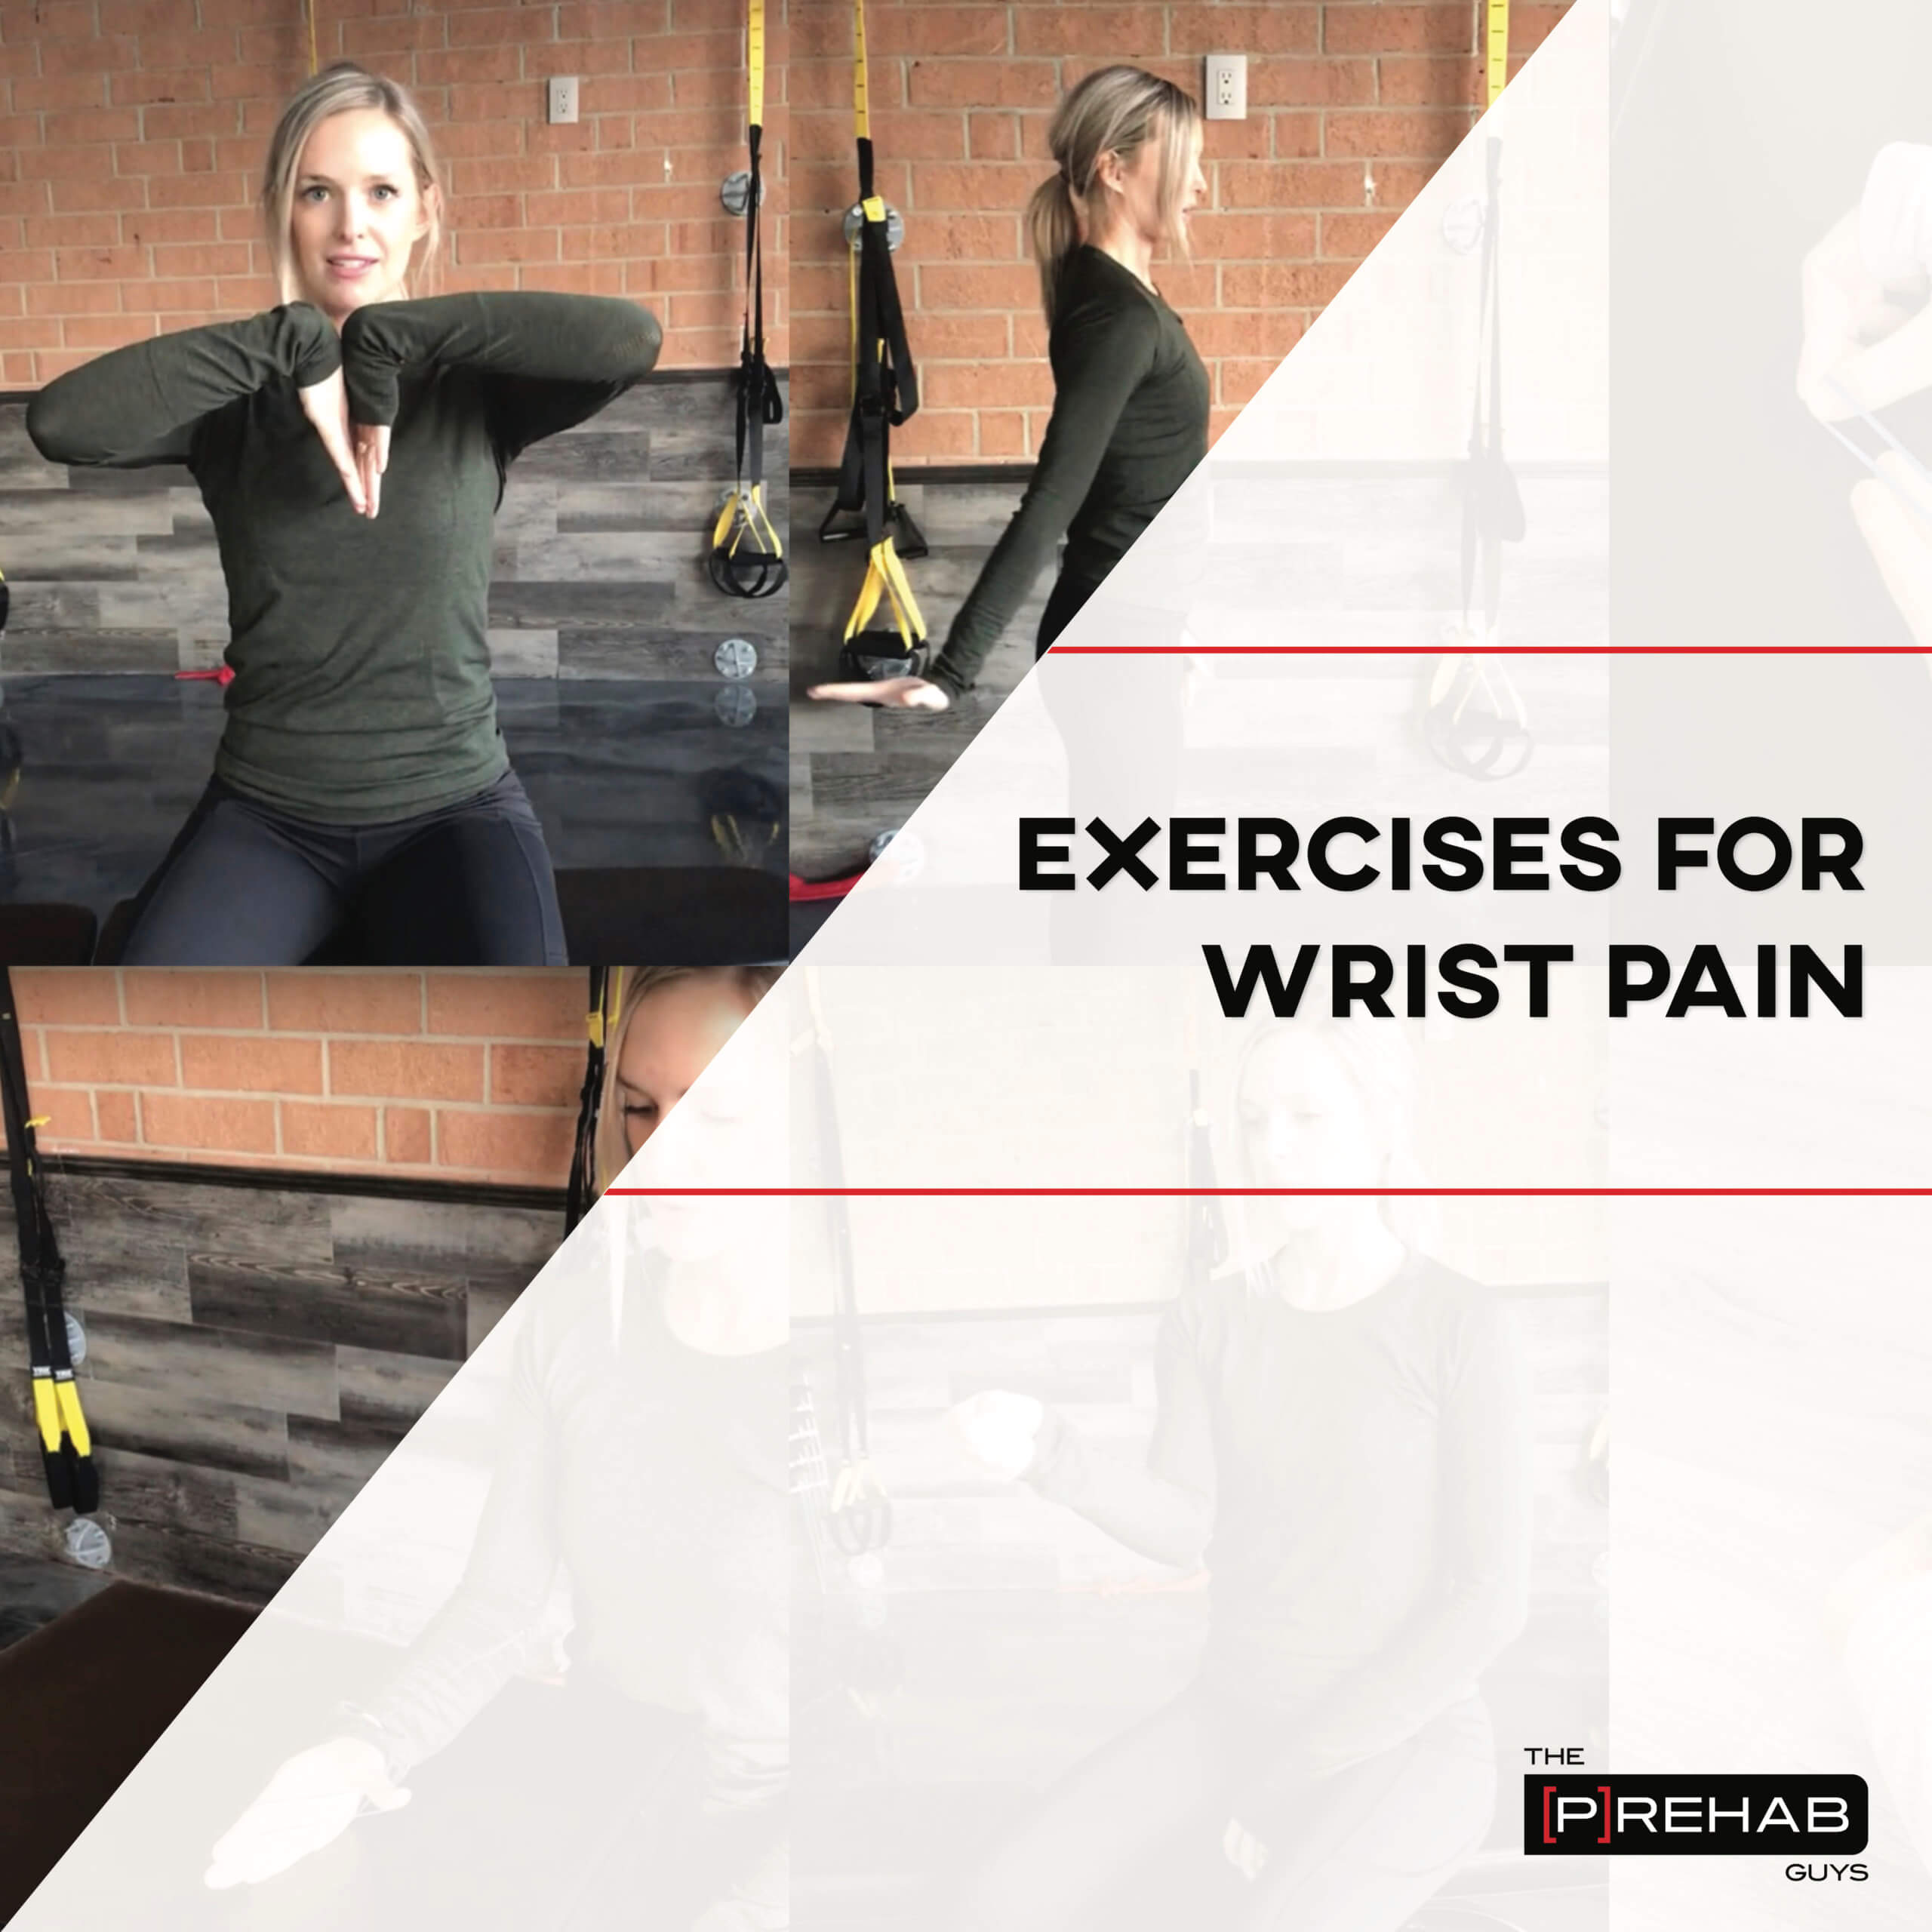 exercises for wrist pain the prehab guys